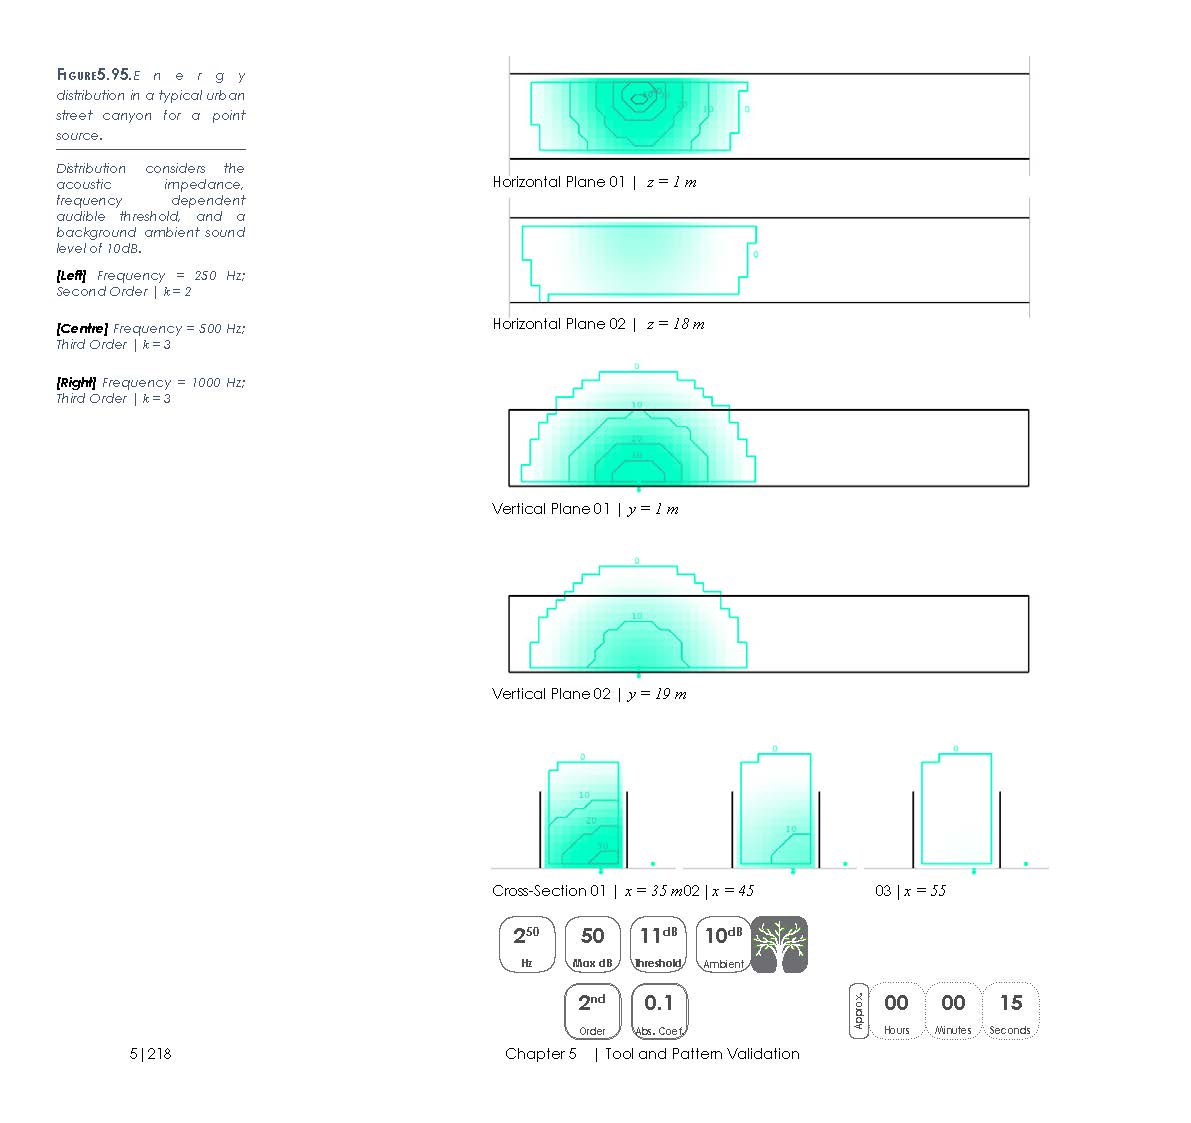 16.03.03_Thesis_01_Interactive_Page_254.jpg